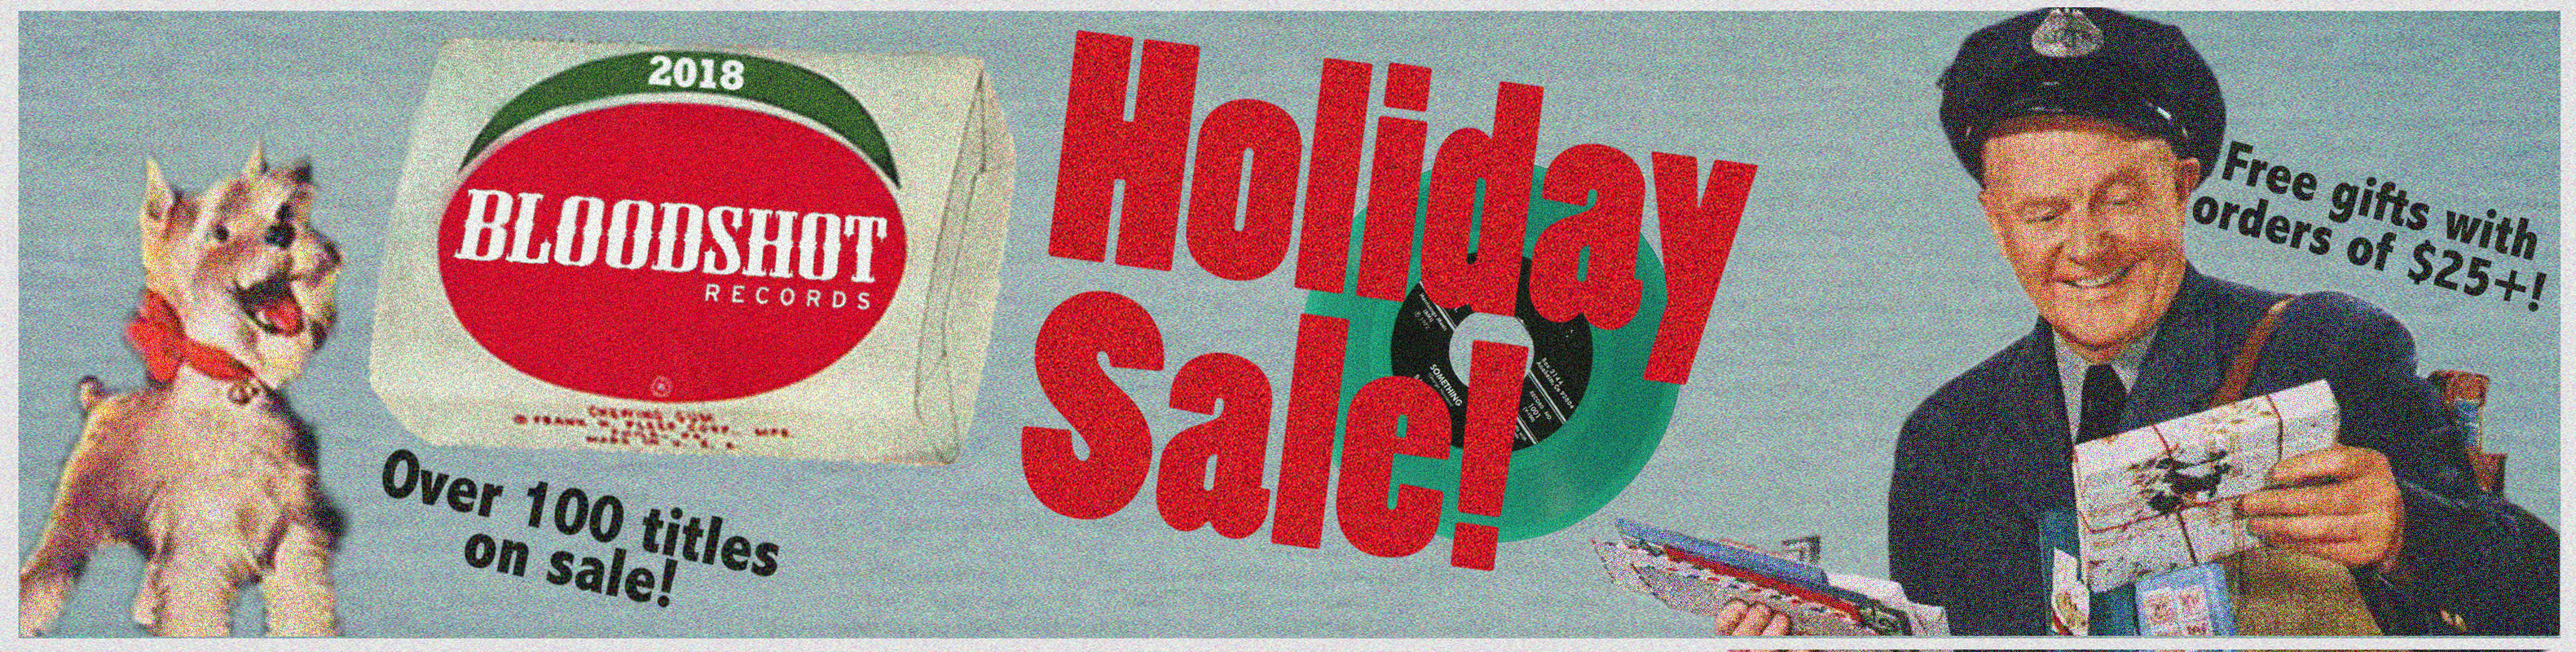 2018 Bloodshot Records Holiday Sale